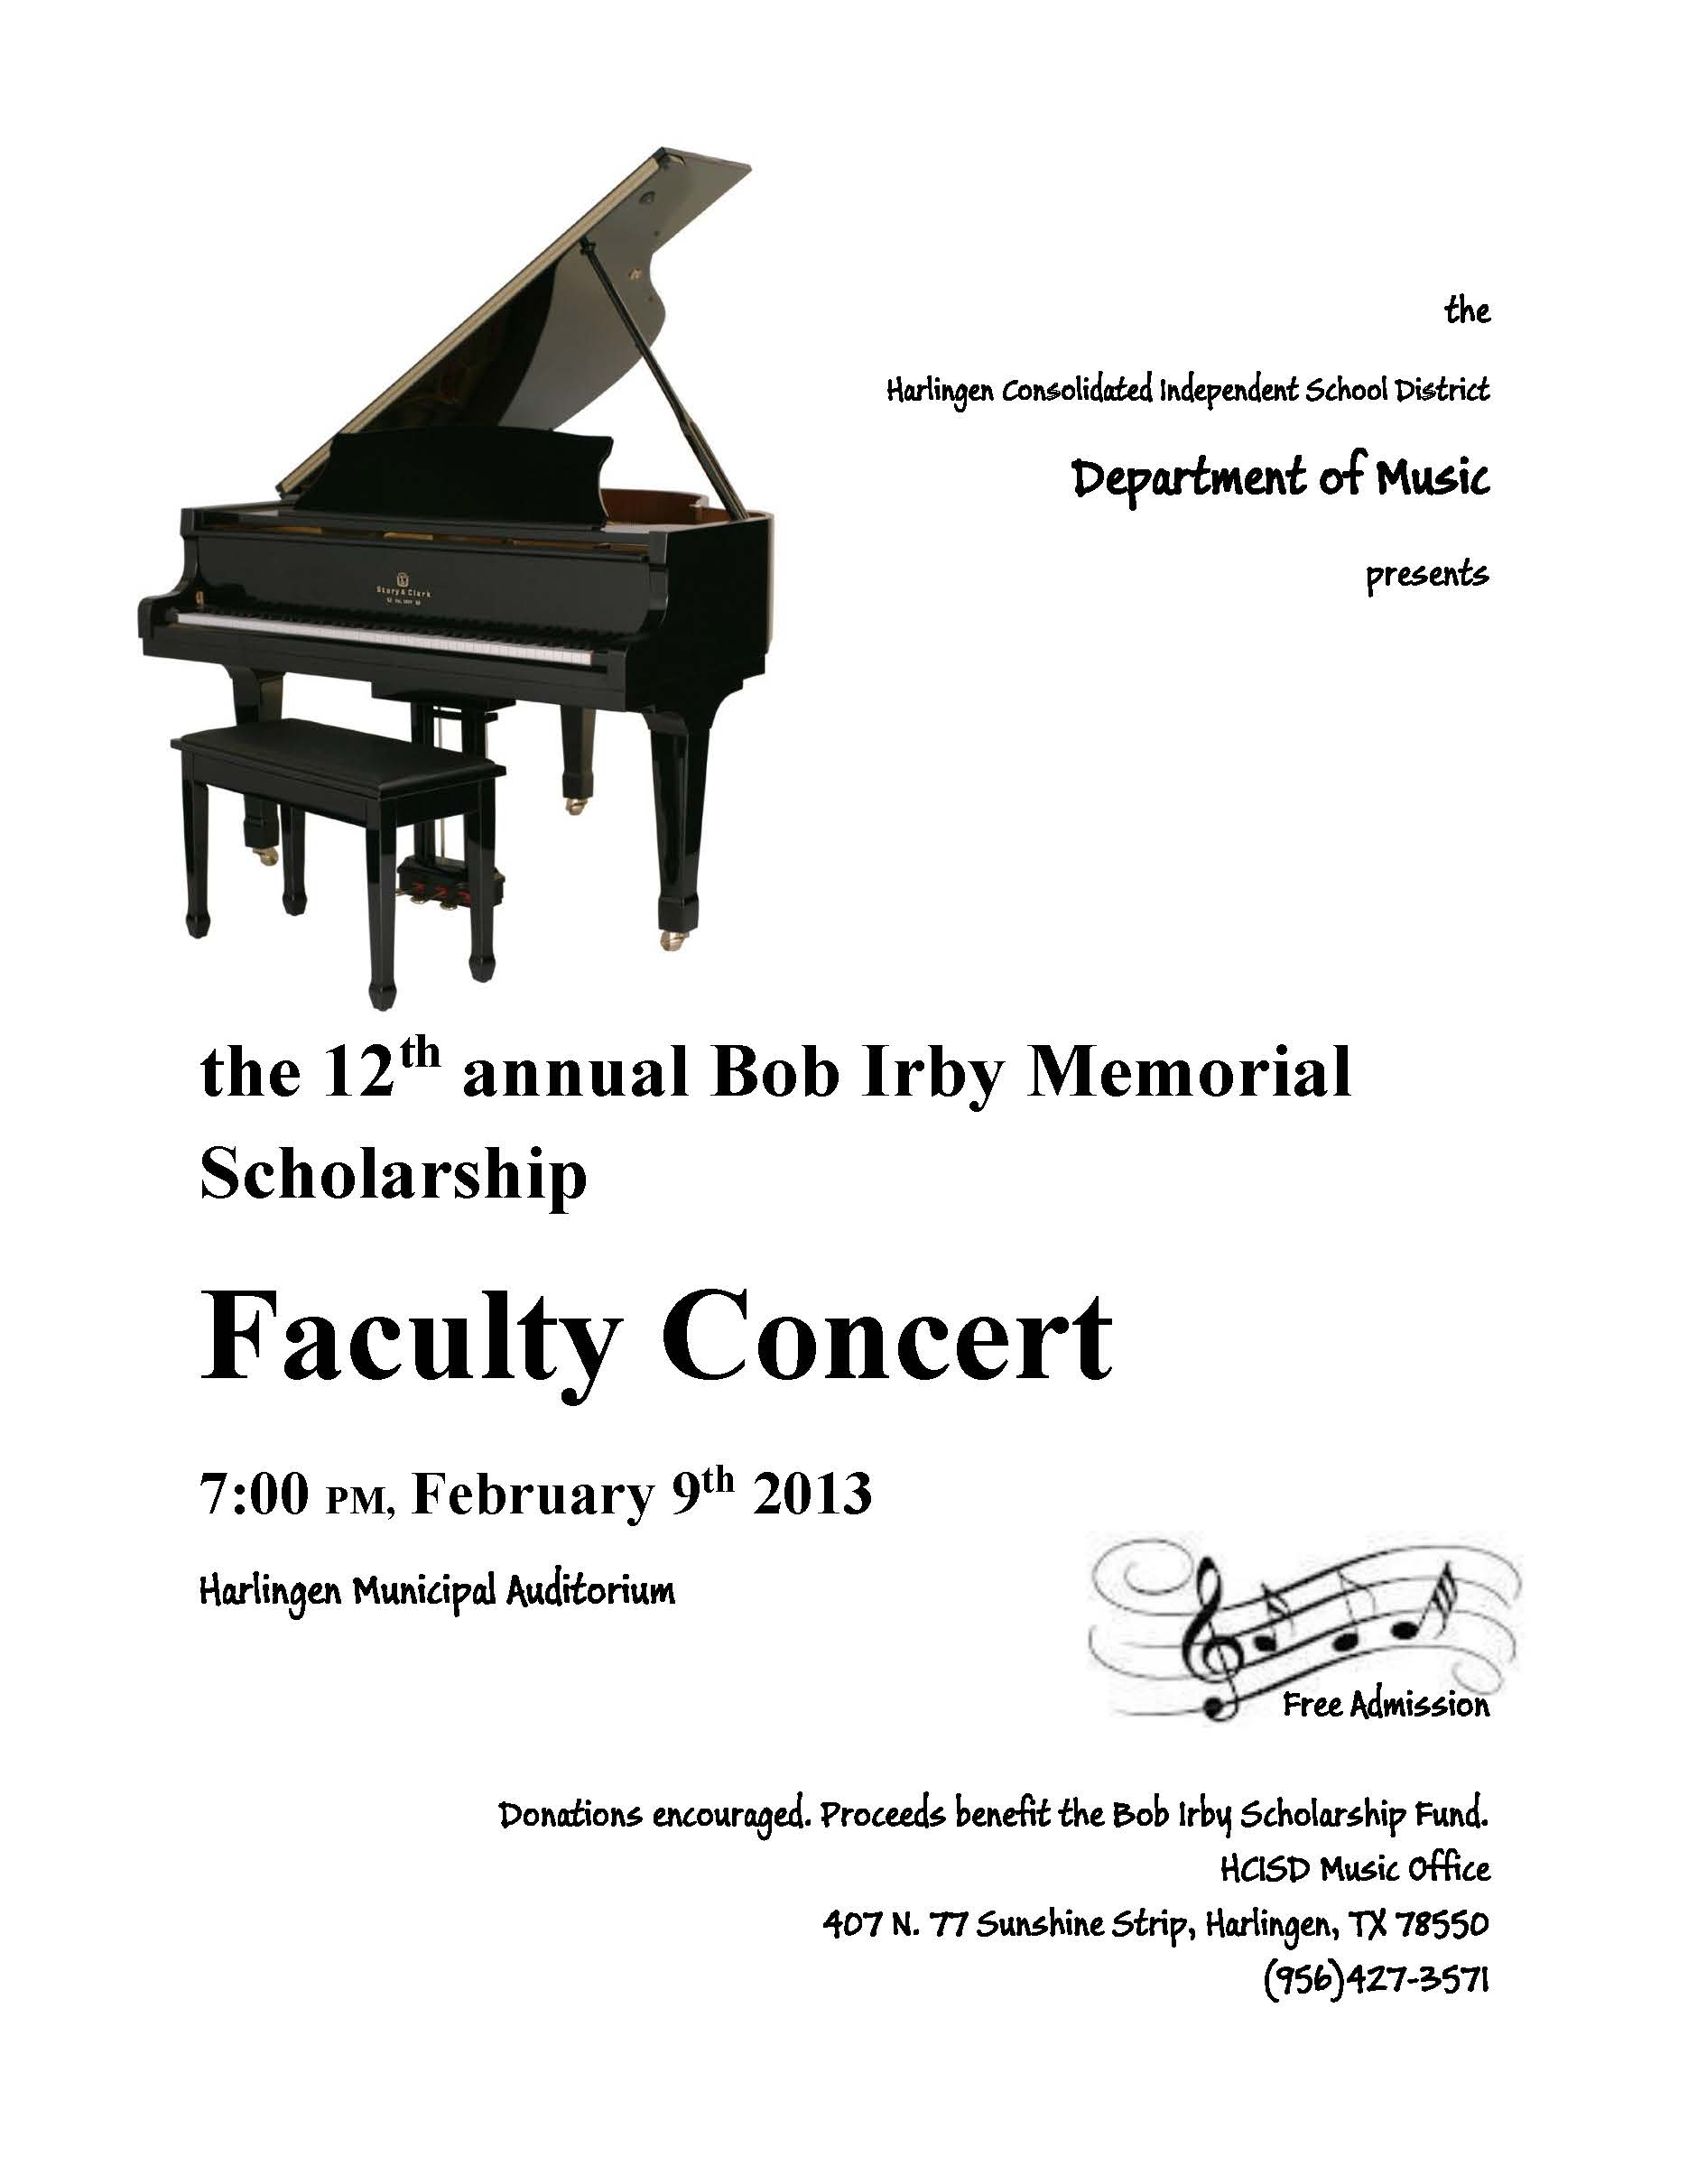 Music Department gears up to host faculty concert for scholarship fund